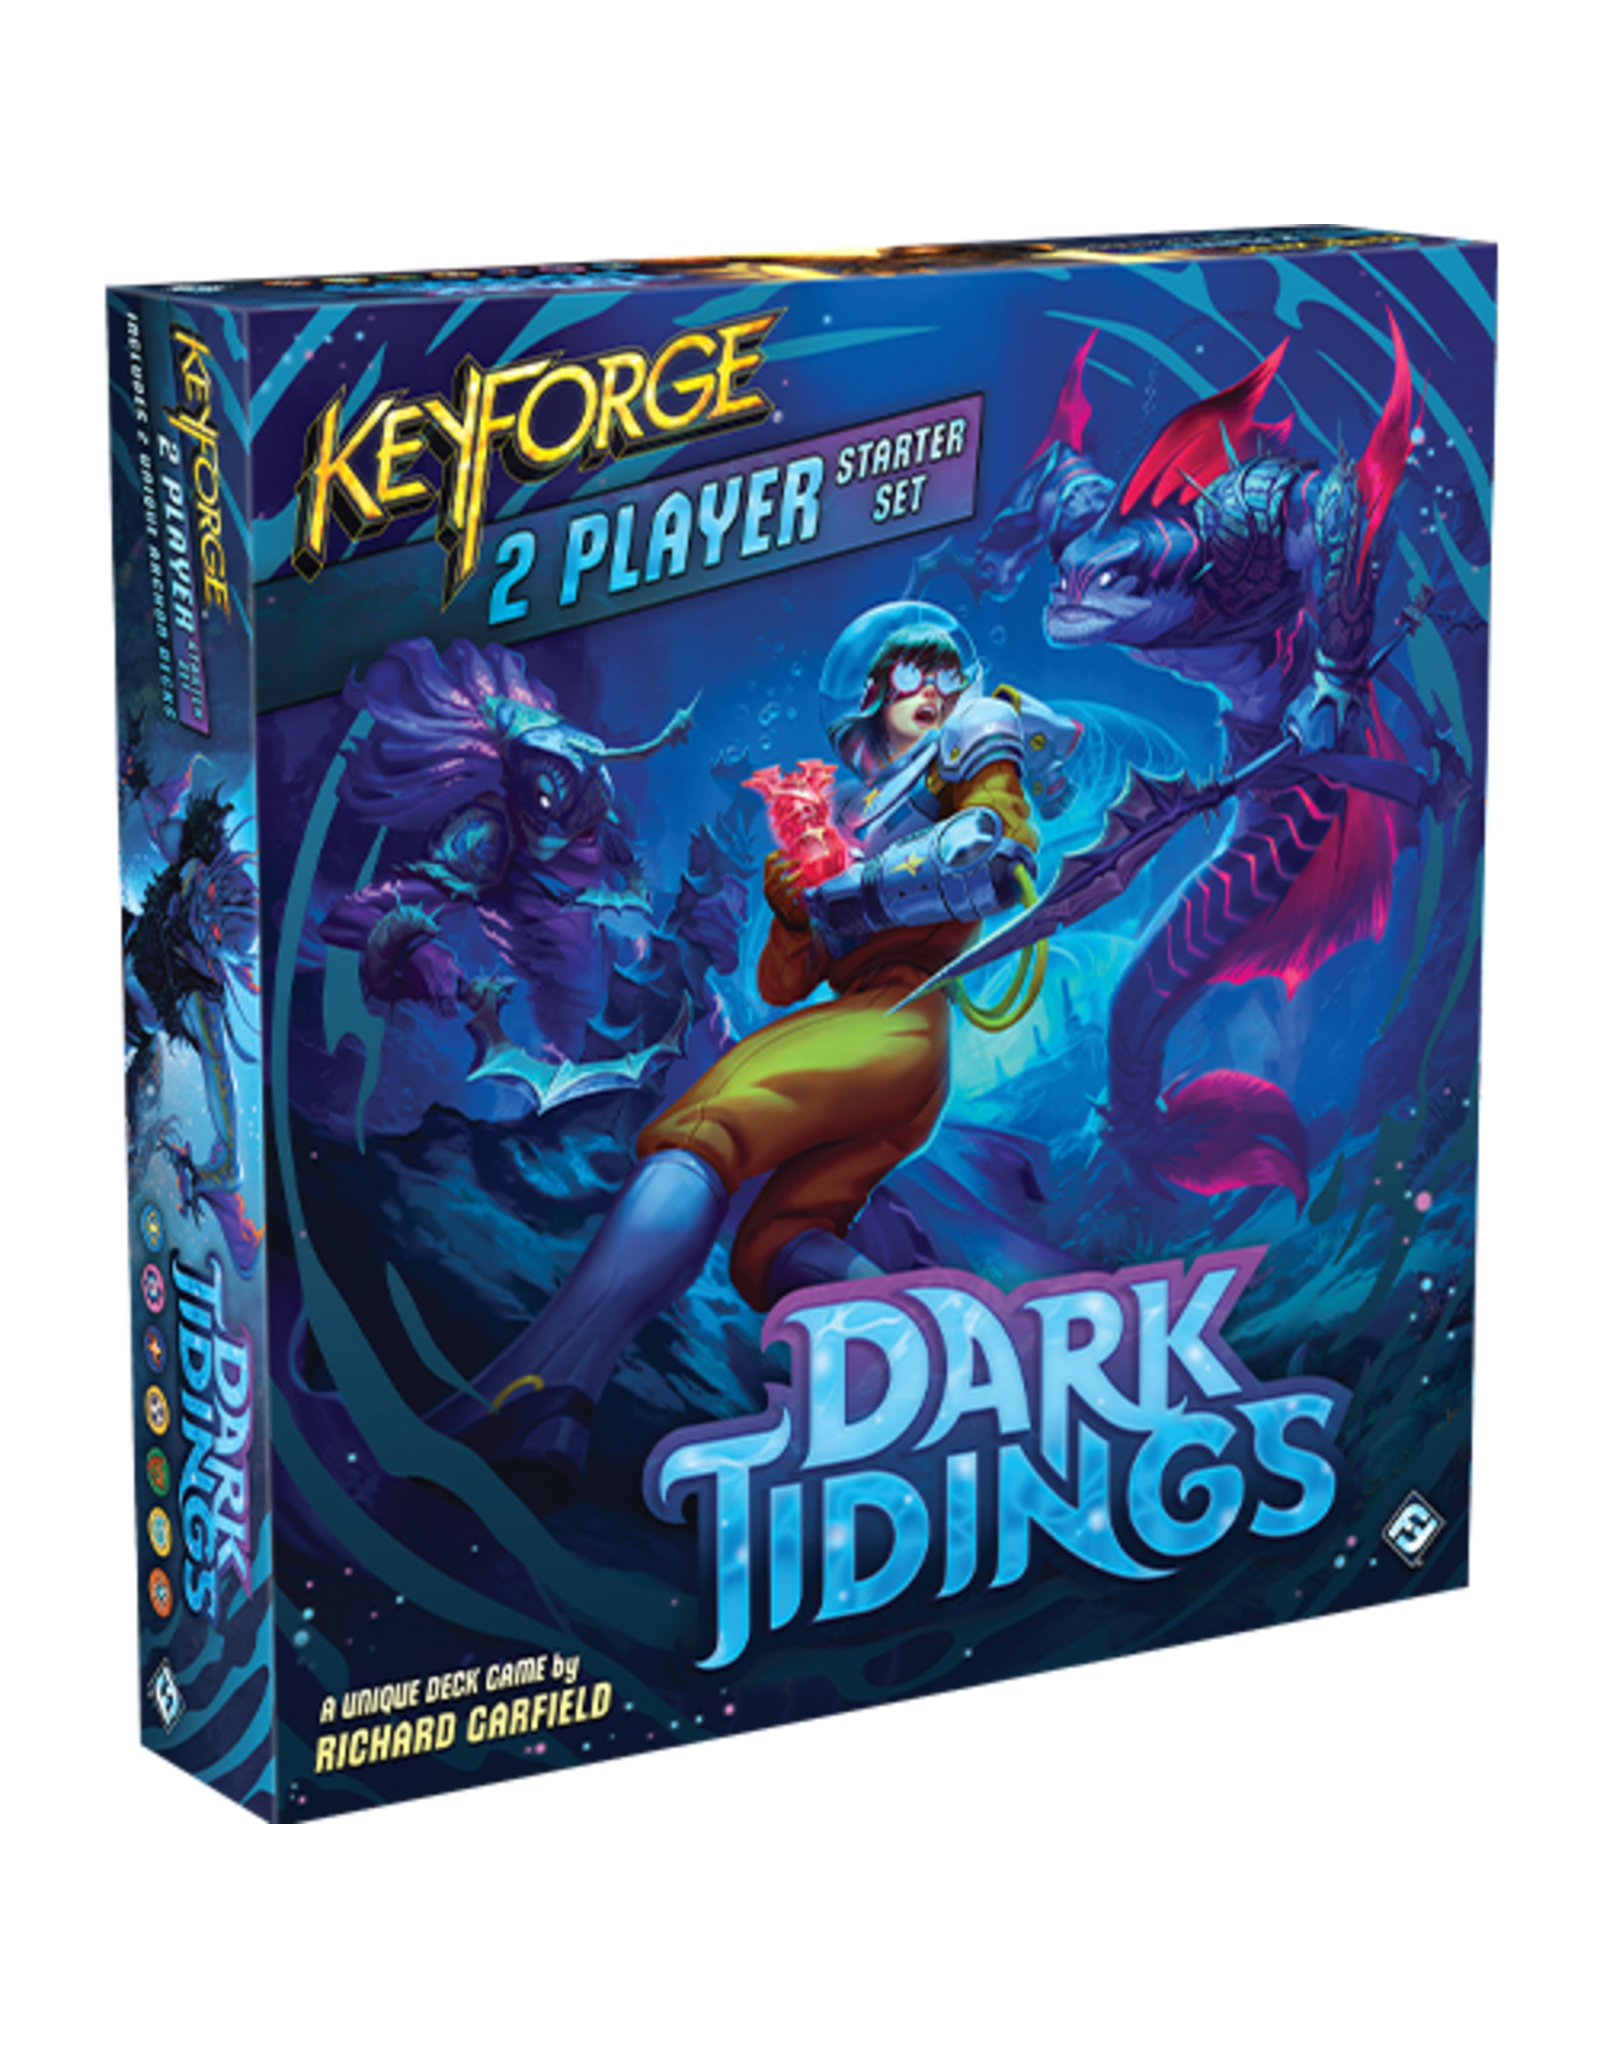 FANTASY FLIGHT GAMES KEYFORGE DARK TIDINGS 2-PLAYER STARTER KIT PRE-ORDER